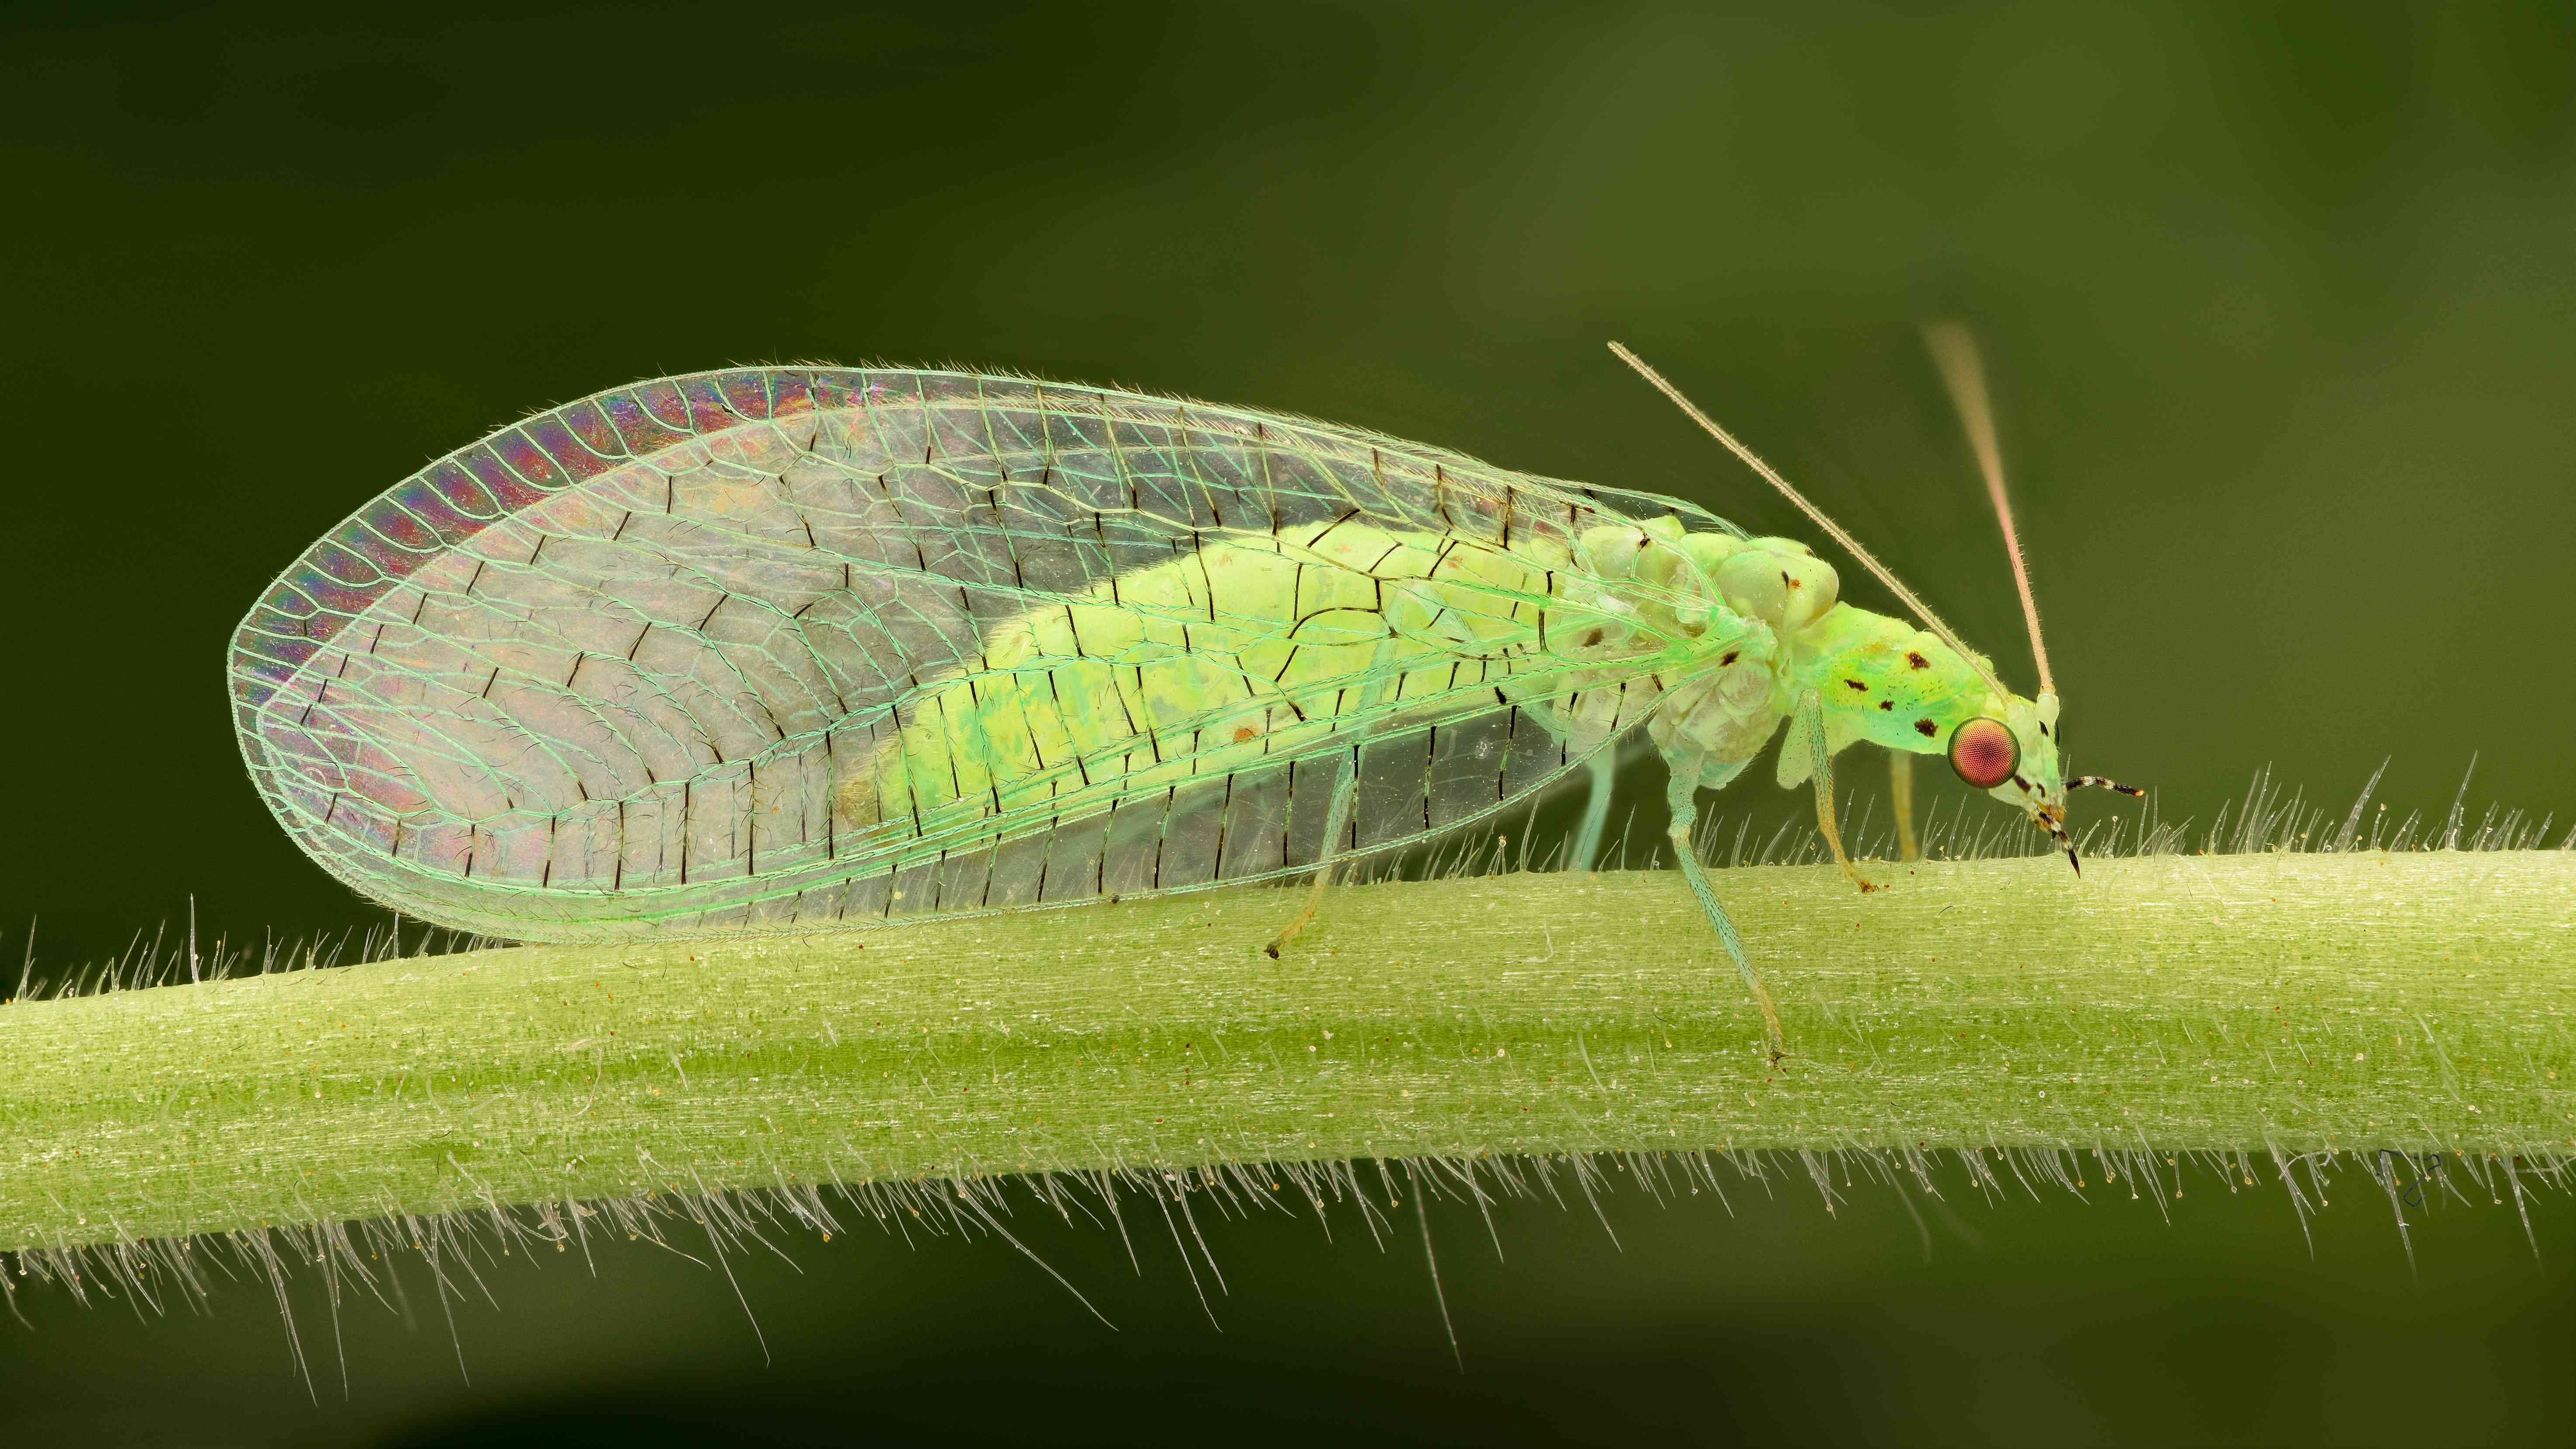 A lacewing inspects a plant's stem